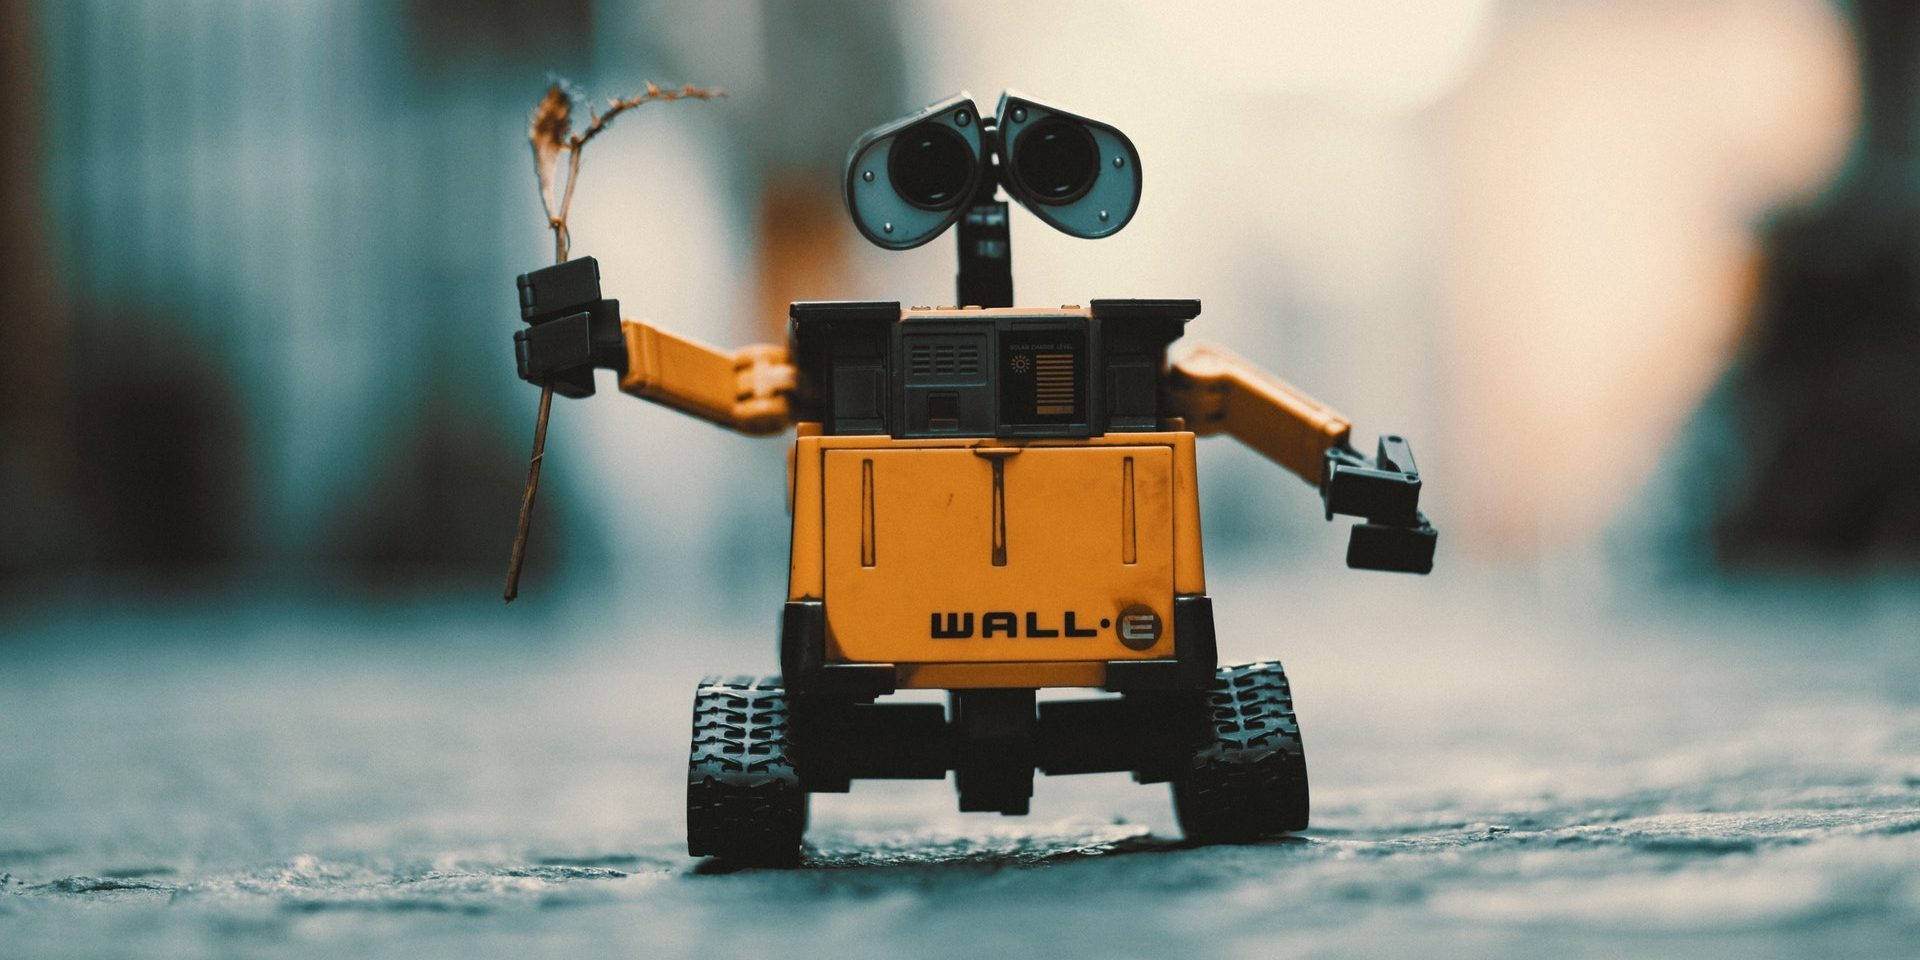 Wall-E robot - 15 STEM and STEAM Ideas for Homeschoolers